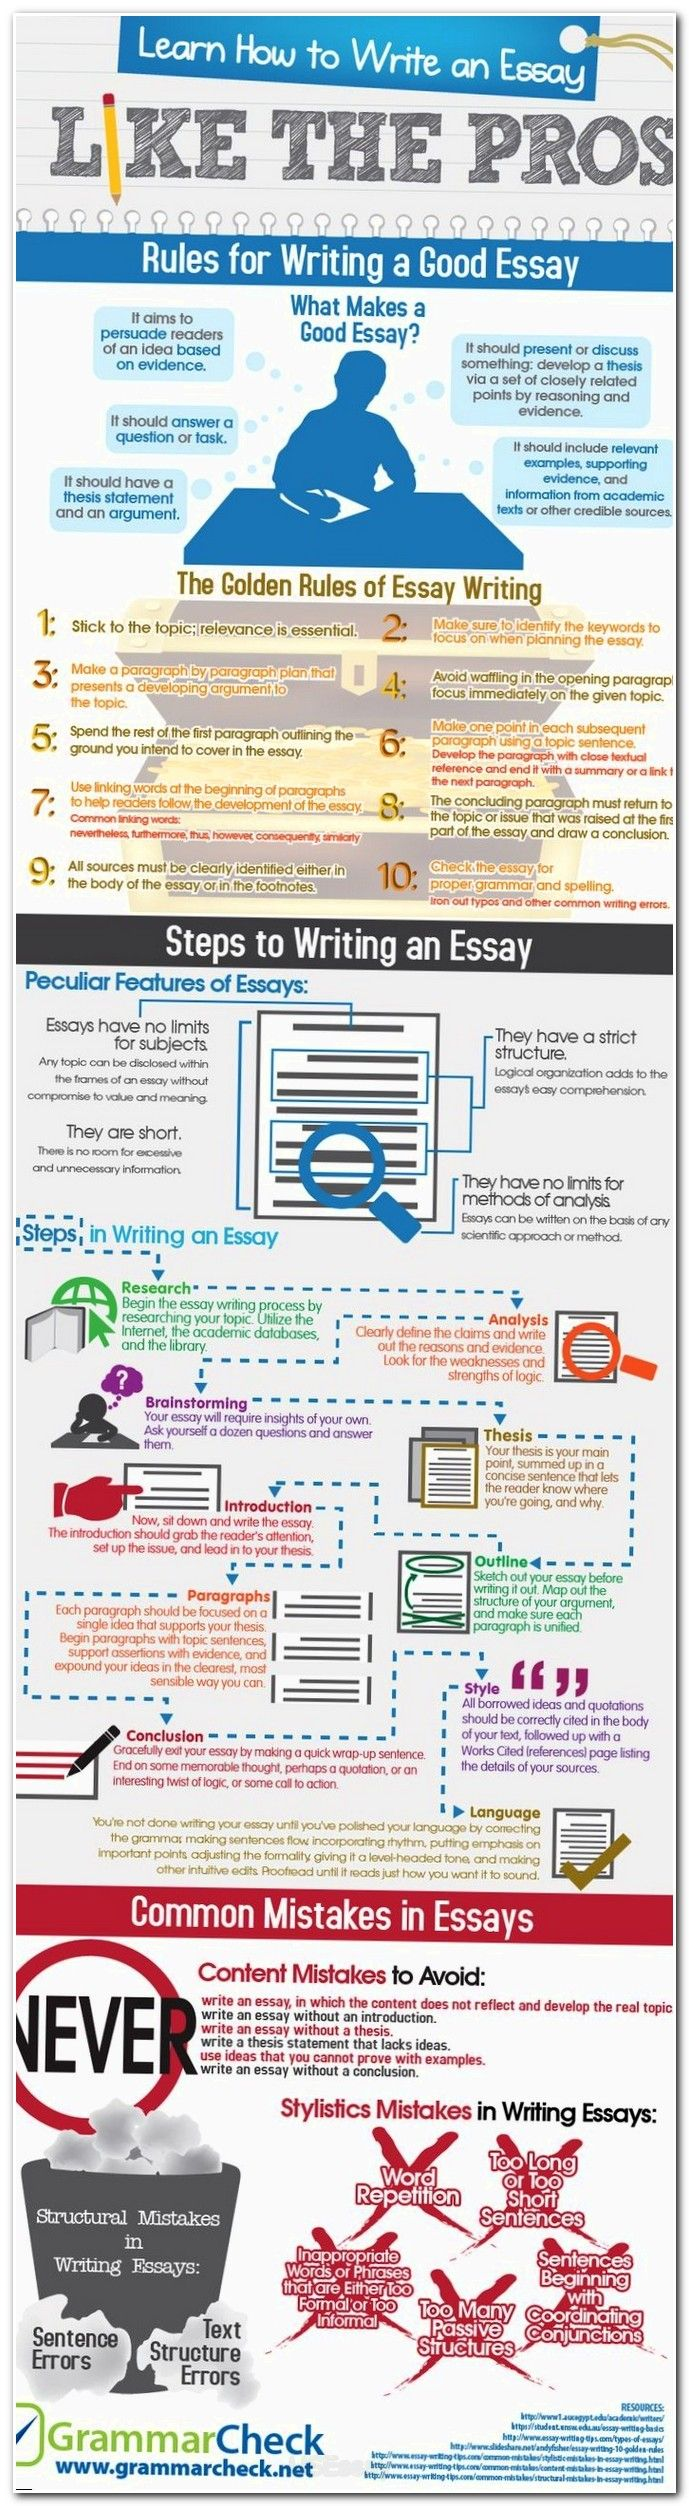 the best thesis sentence ideas transition words  structuring law essay topics structure of a law essay in the same way that you have a thesis to indicate the point of the essay you should have a topic